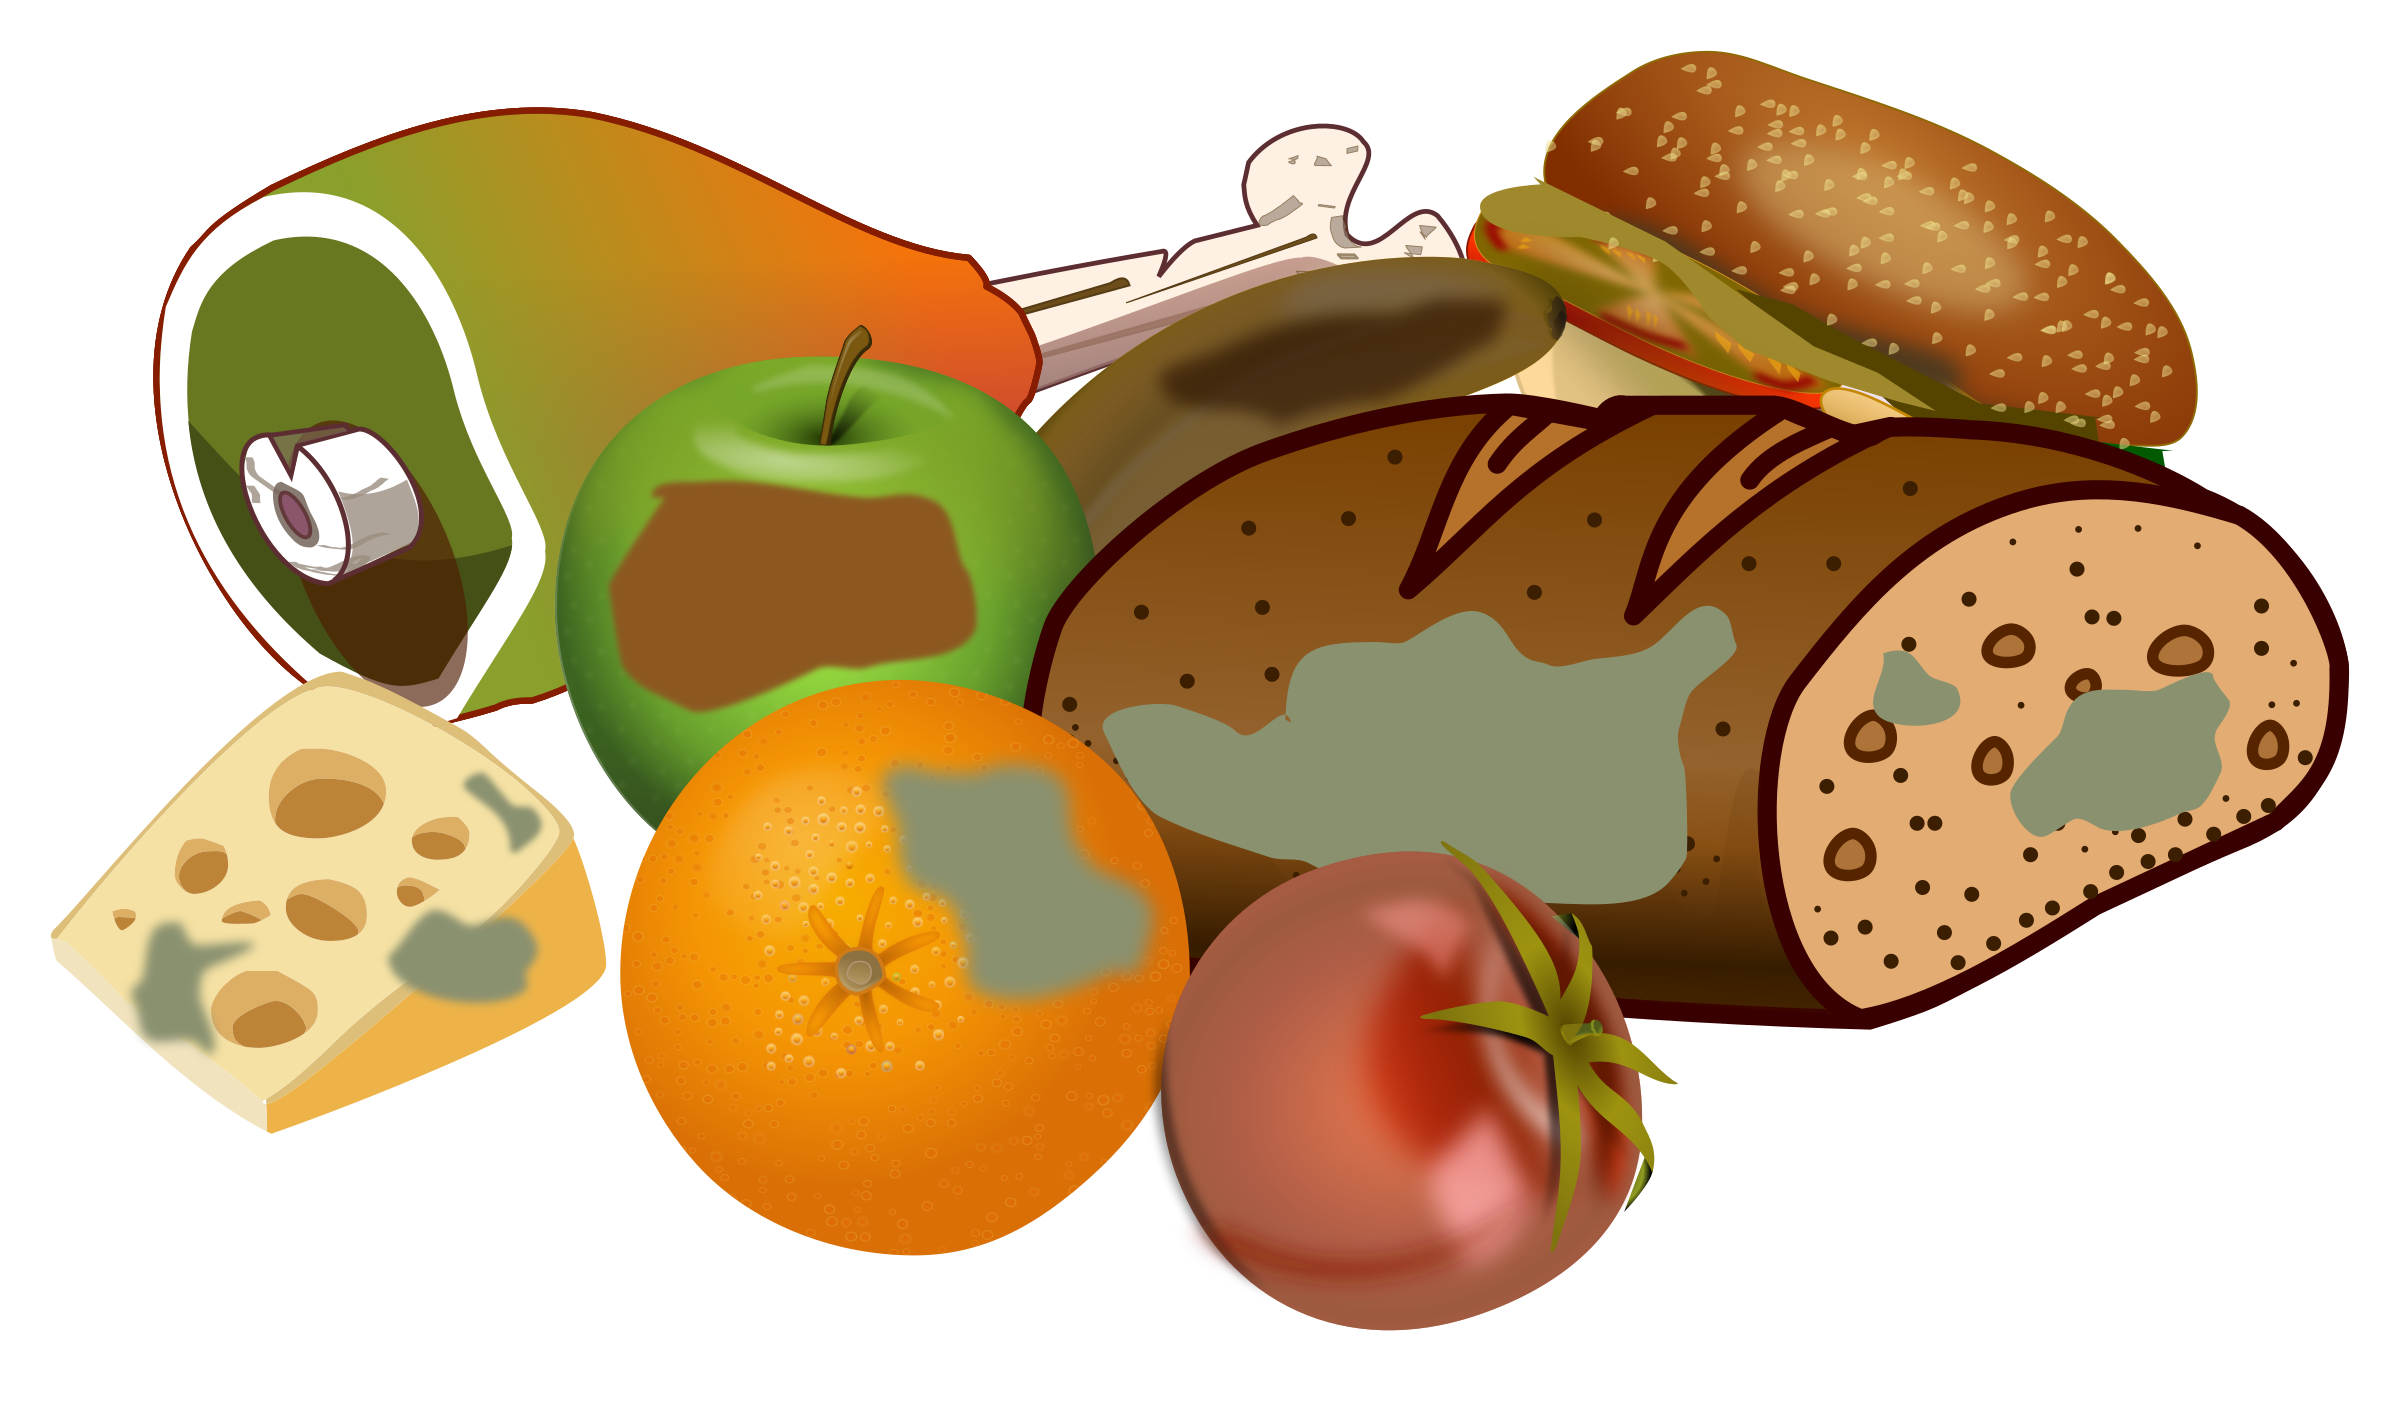 Rot apple clipart image library download Clipart - Wasting food image library download